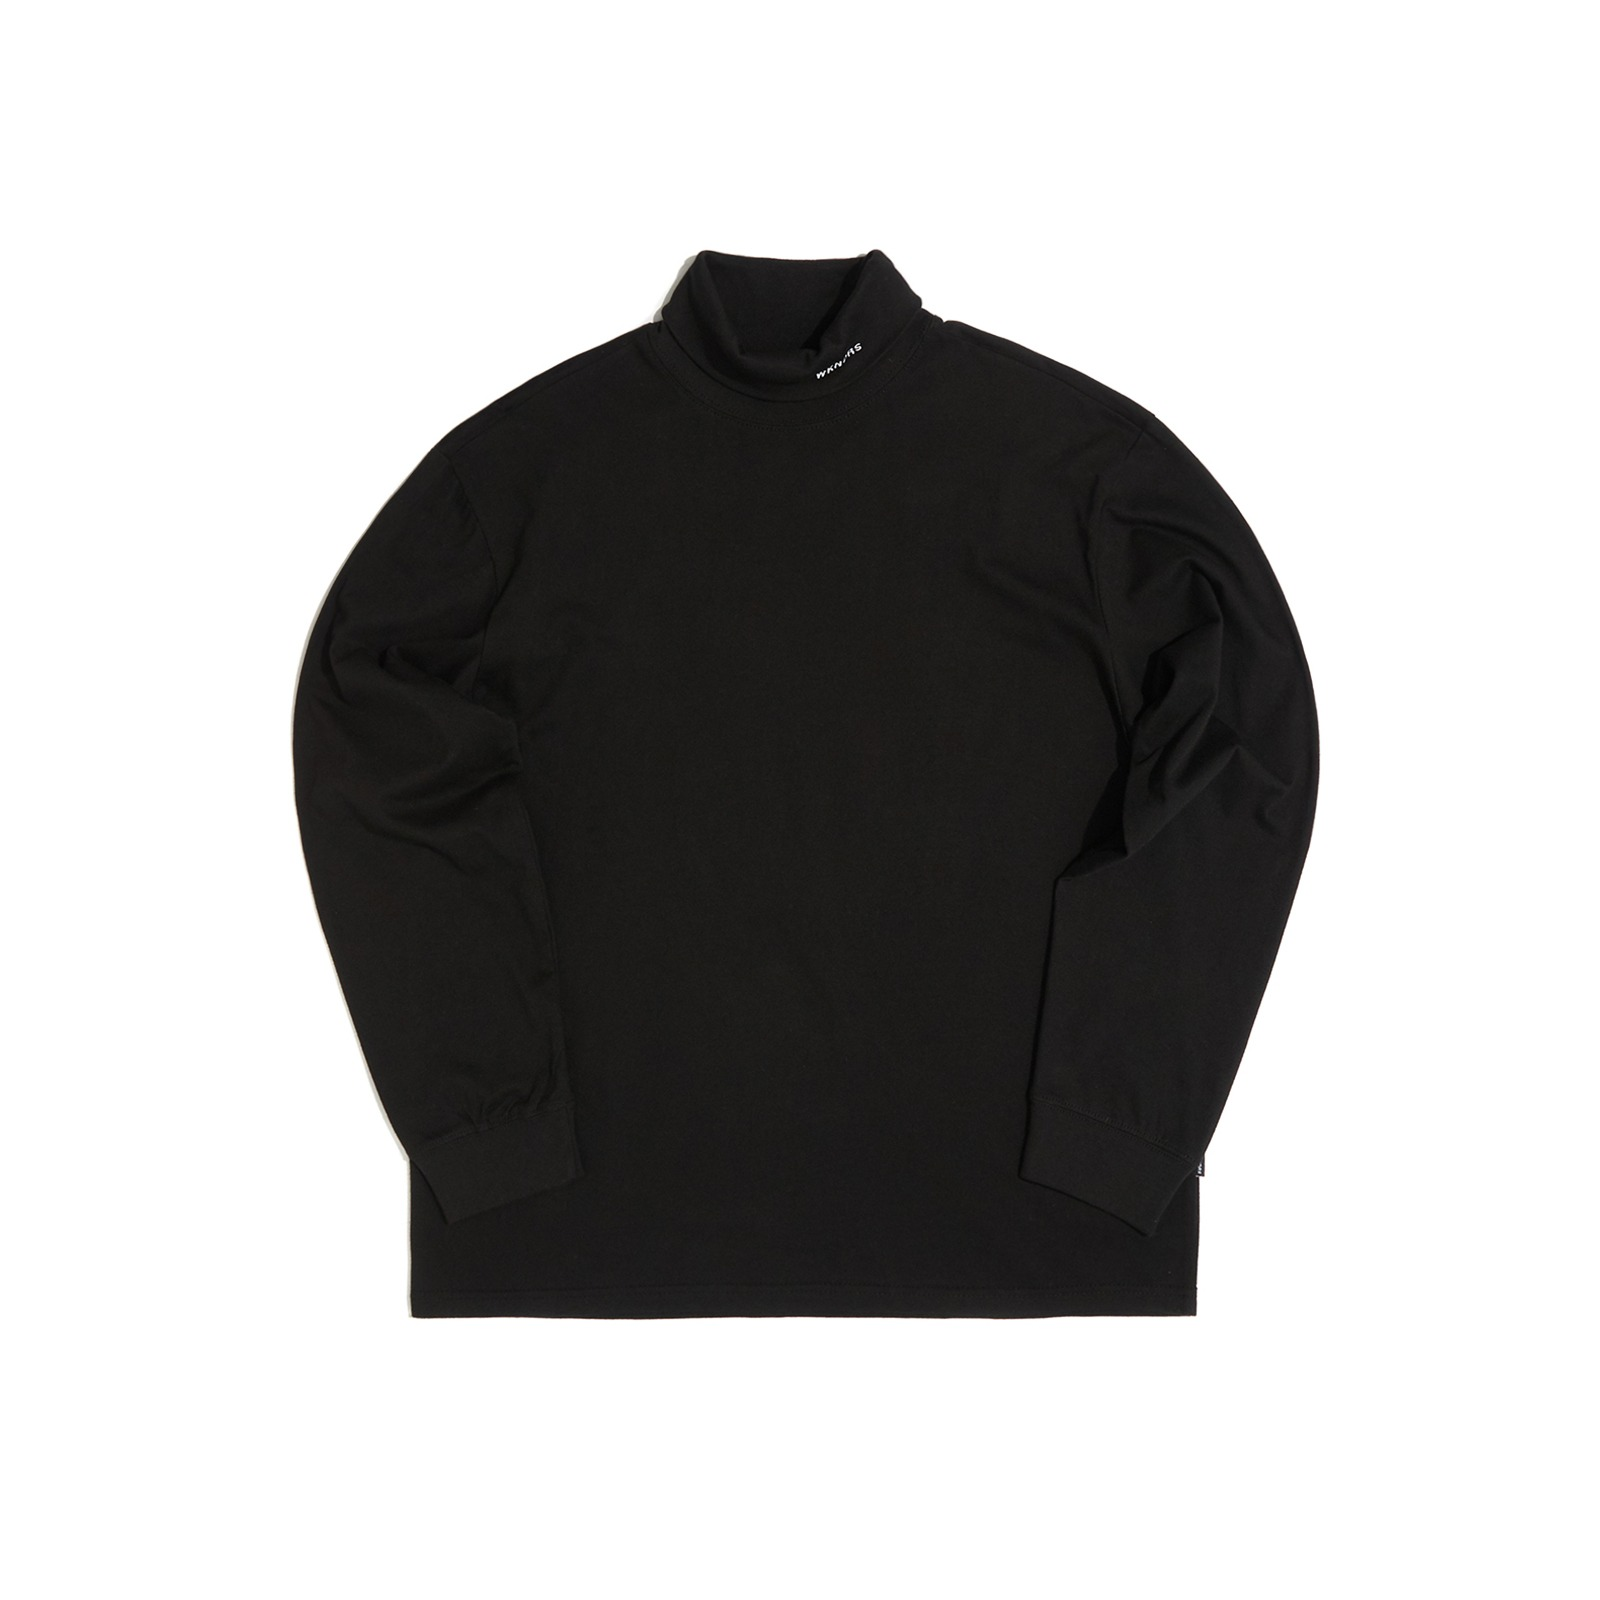 LONG SLEEVE TURTLE NECK (BLACK)[9/28 예약배송]